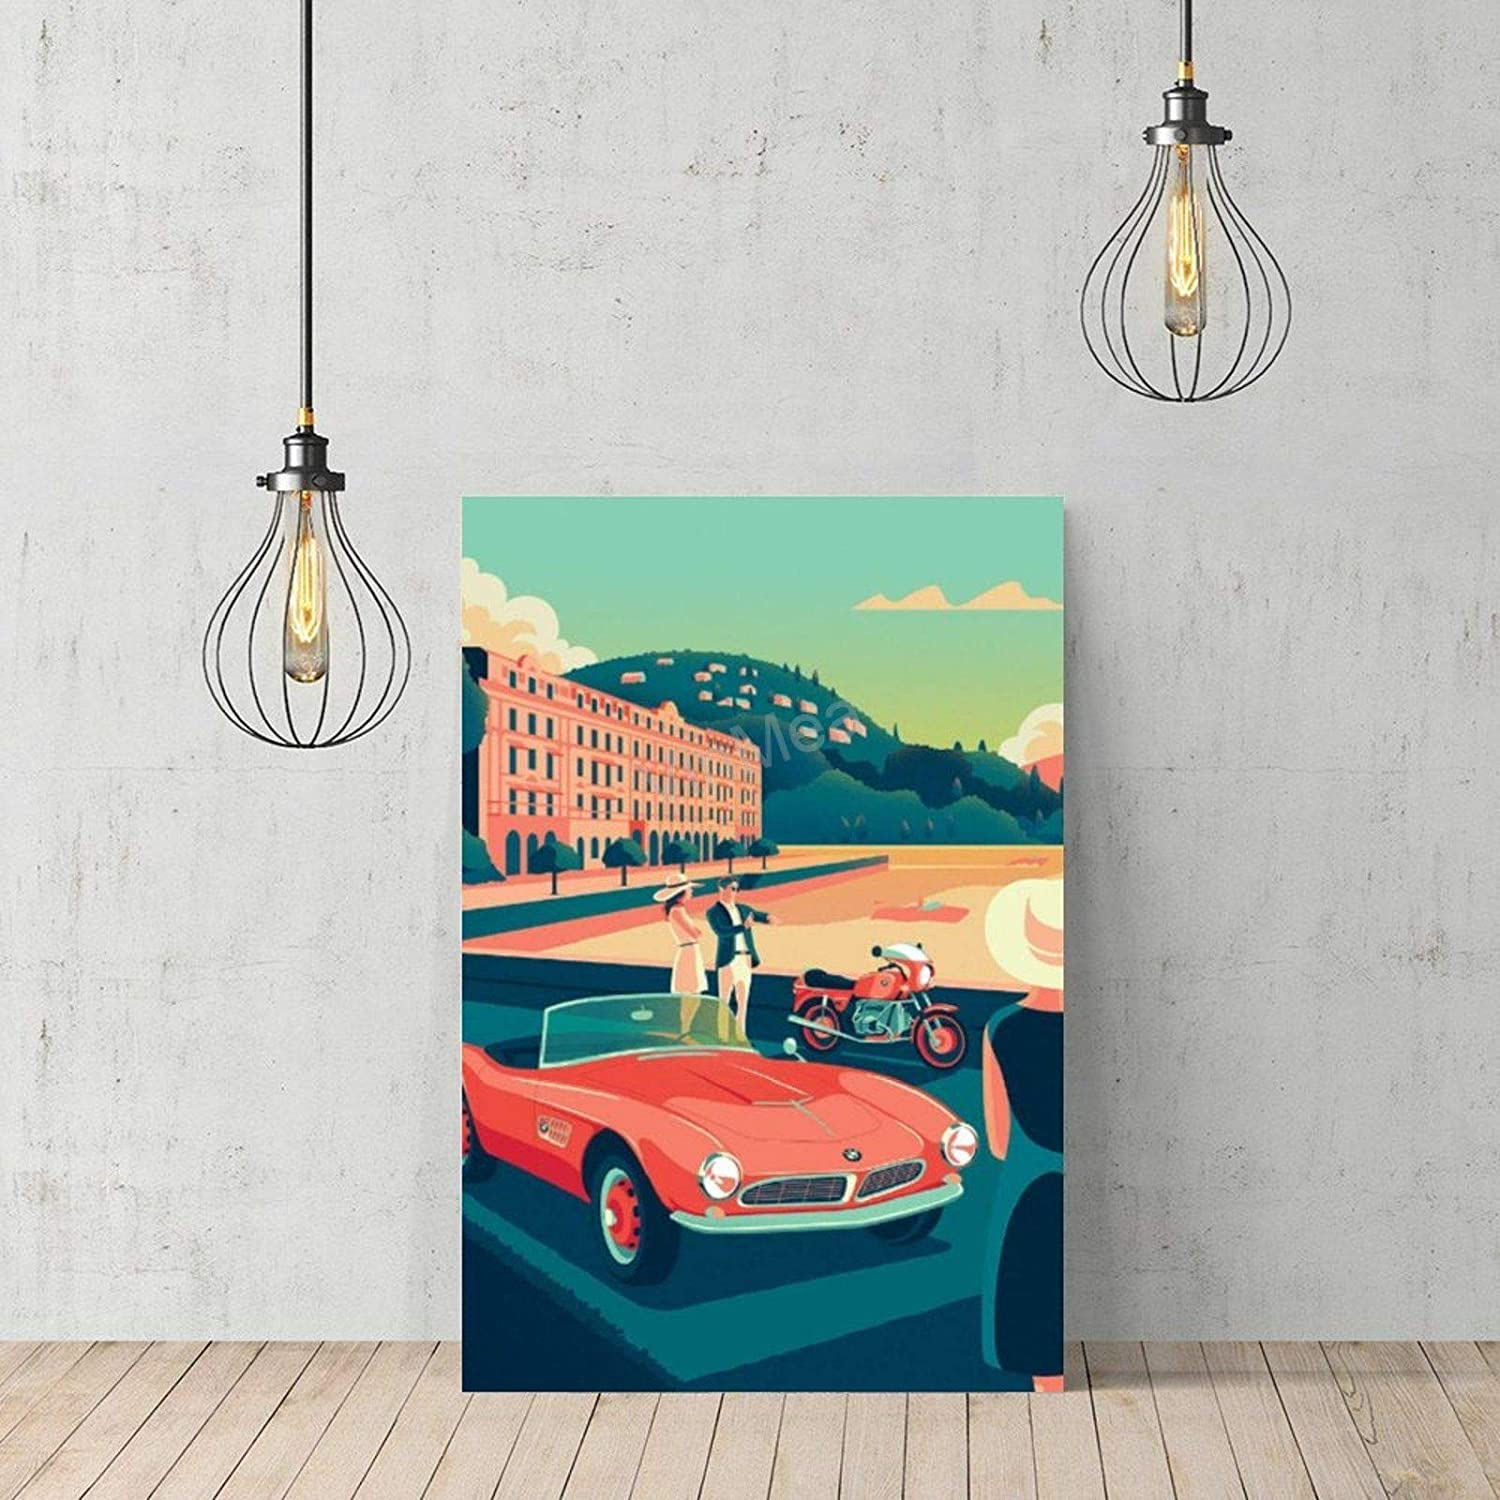 VinMea Frameless Canvas Art Prints Poster, Wooden Old-BMW Wall Decoration for Home Office 12x16 Inch